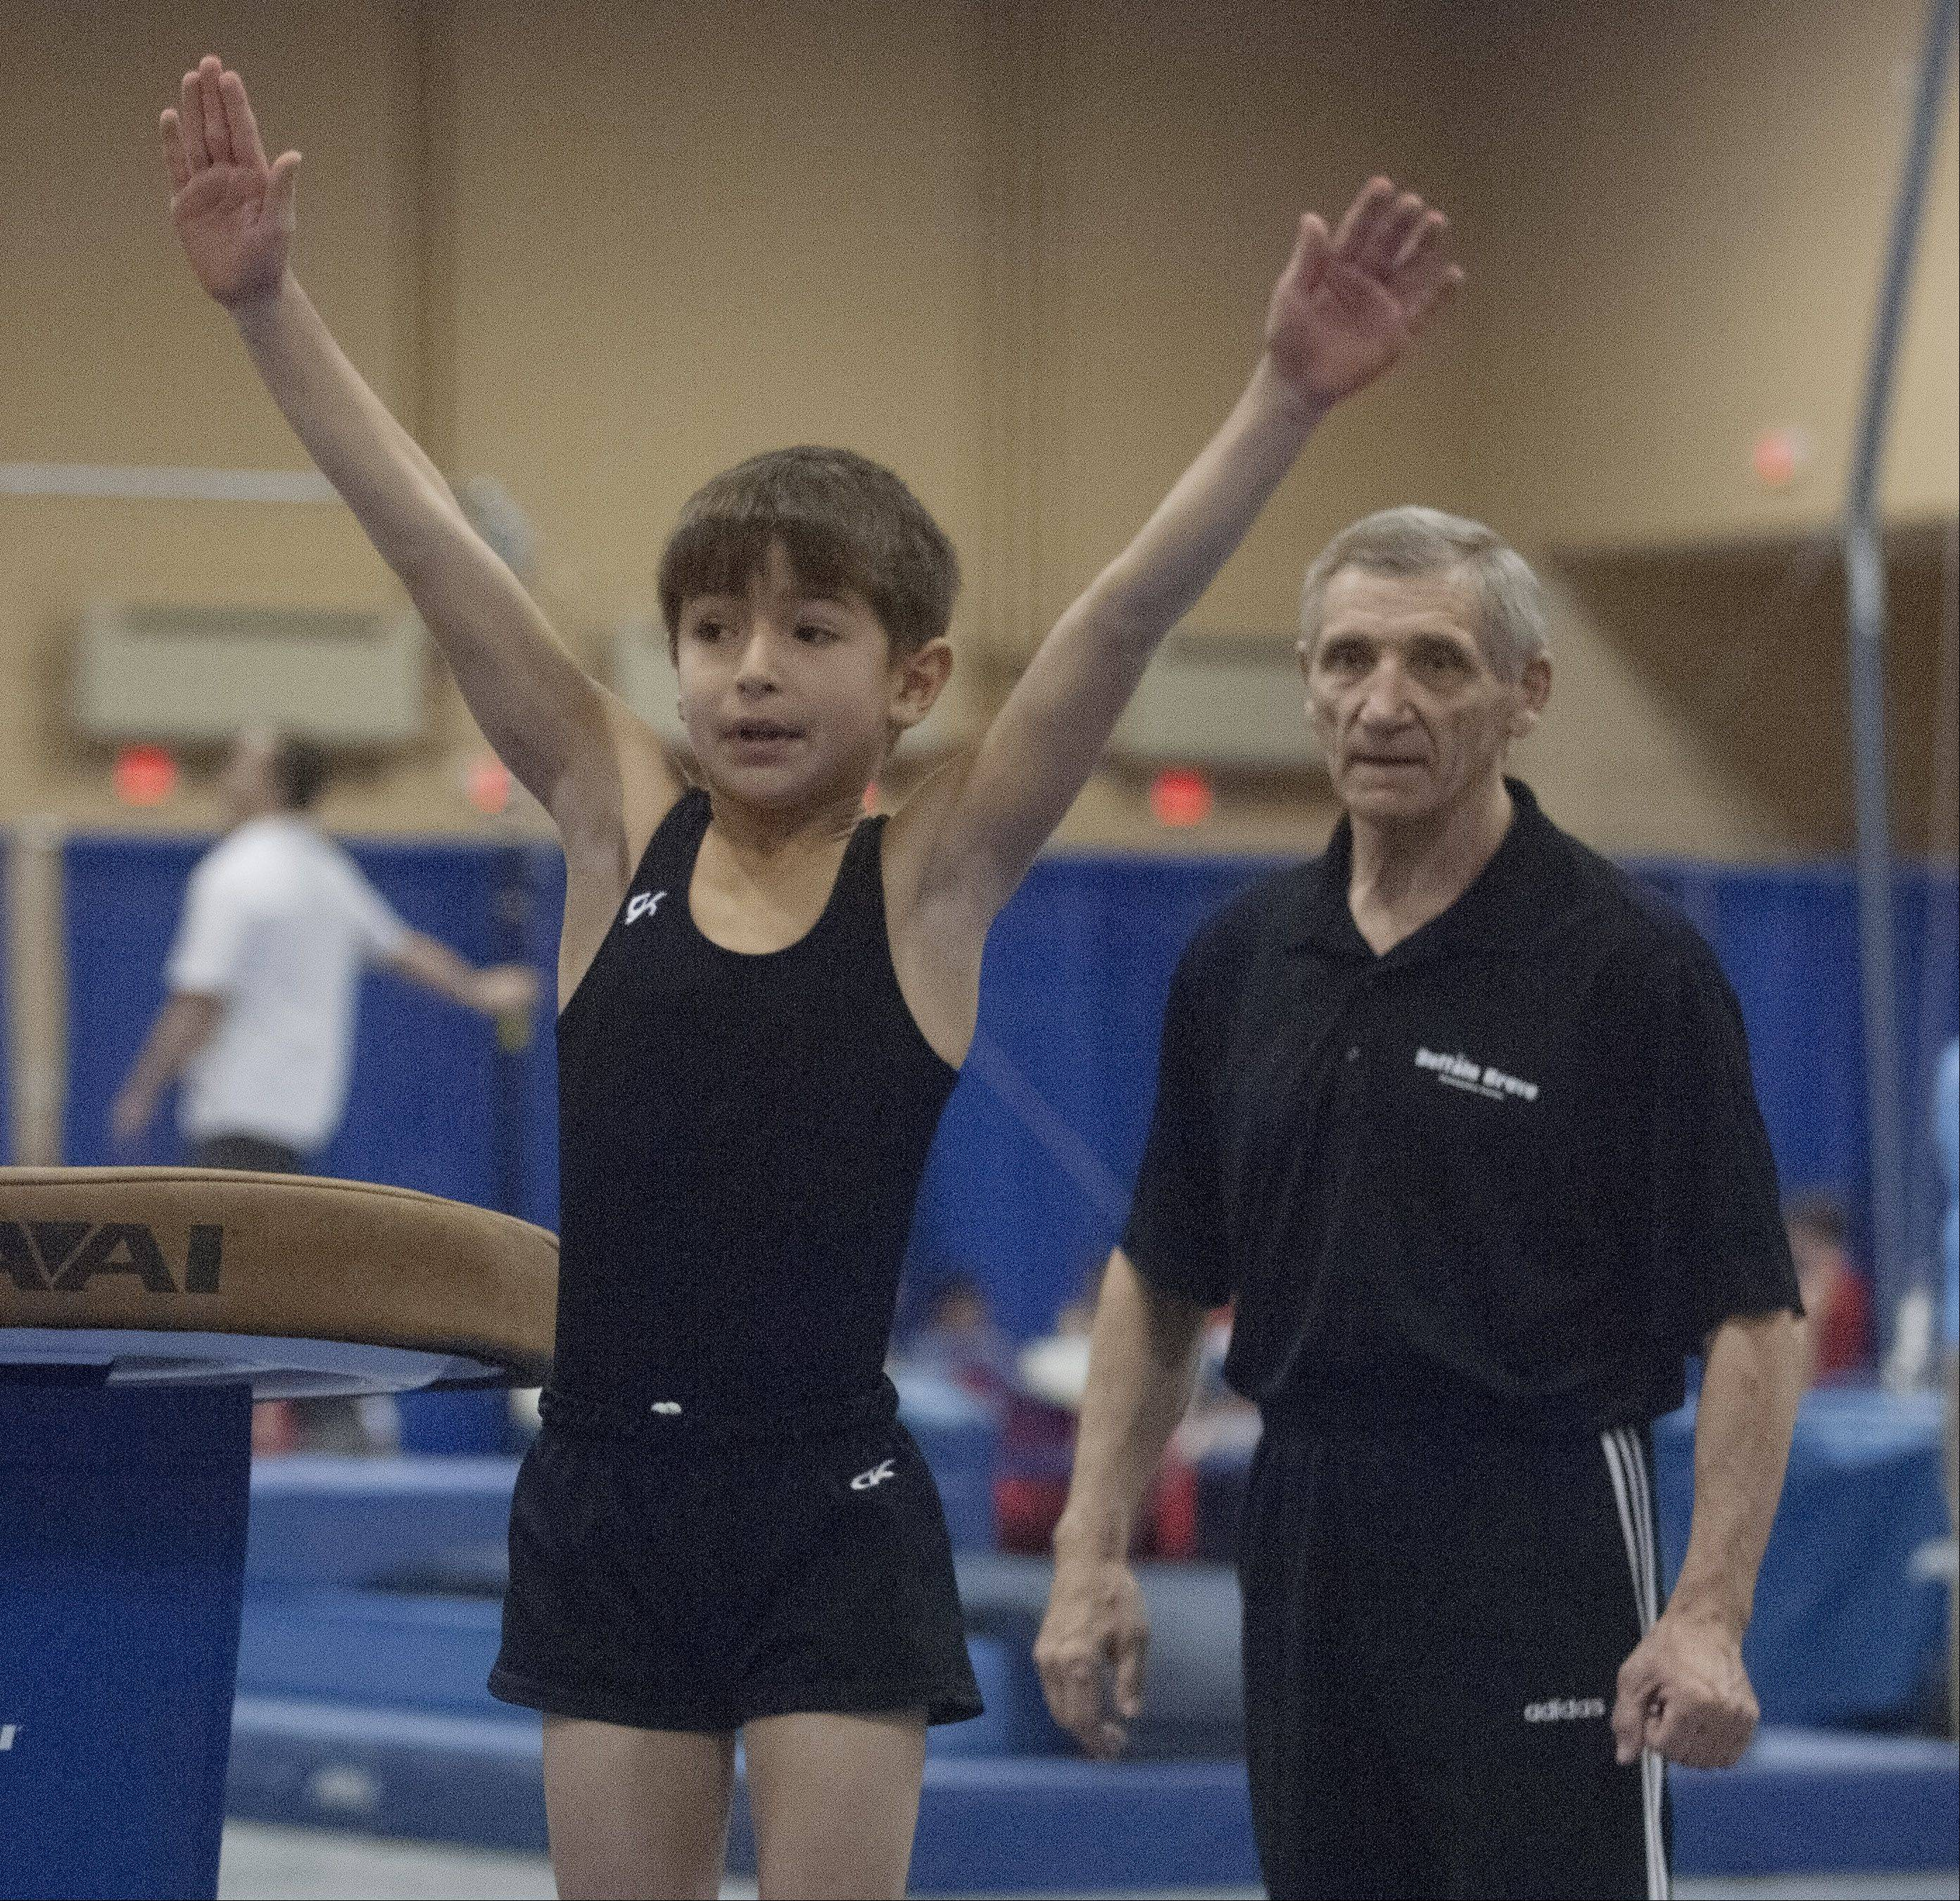 schaumburg convention center gymnastics meet photos